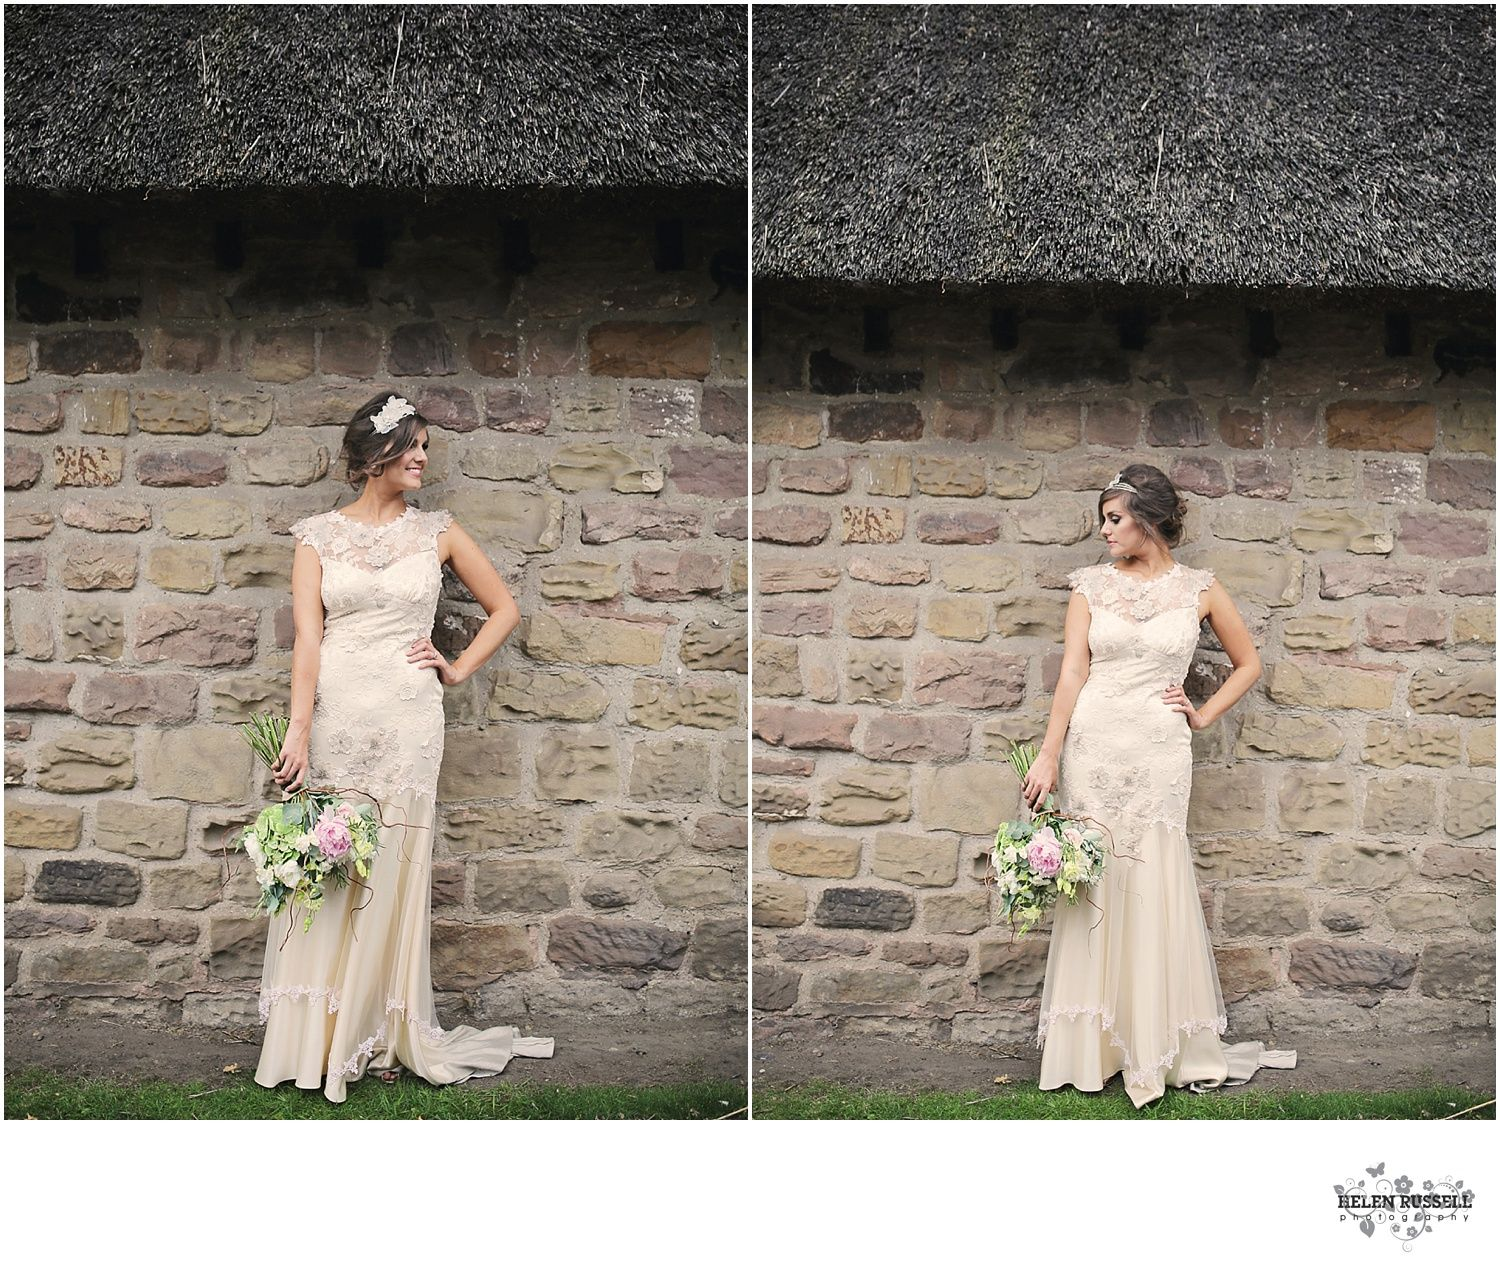 Helen Russell Photography Vintage Fine Art International Wedding Photographer Based In North East Fine Art Wedding Photographer International Wedding Wedding